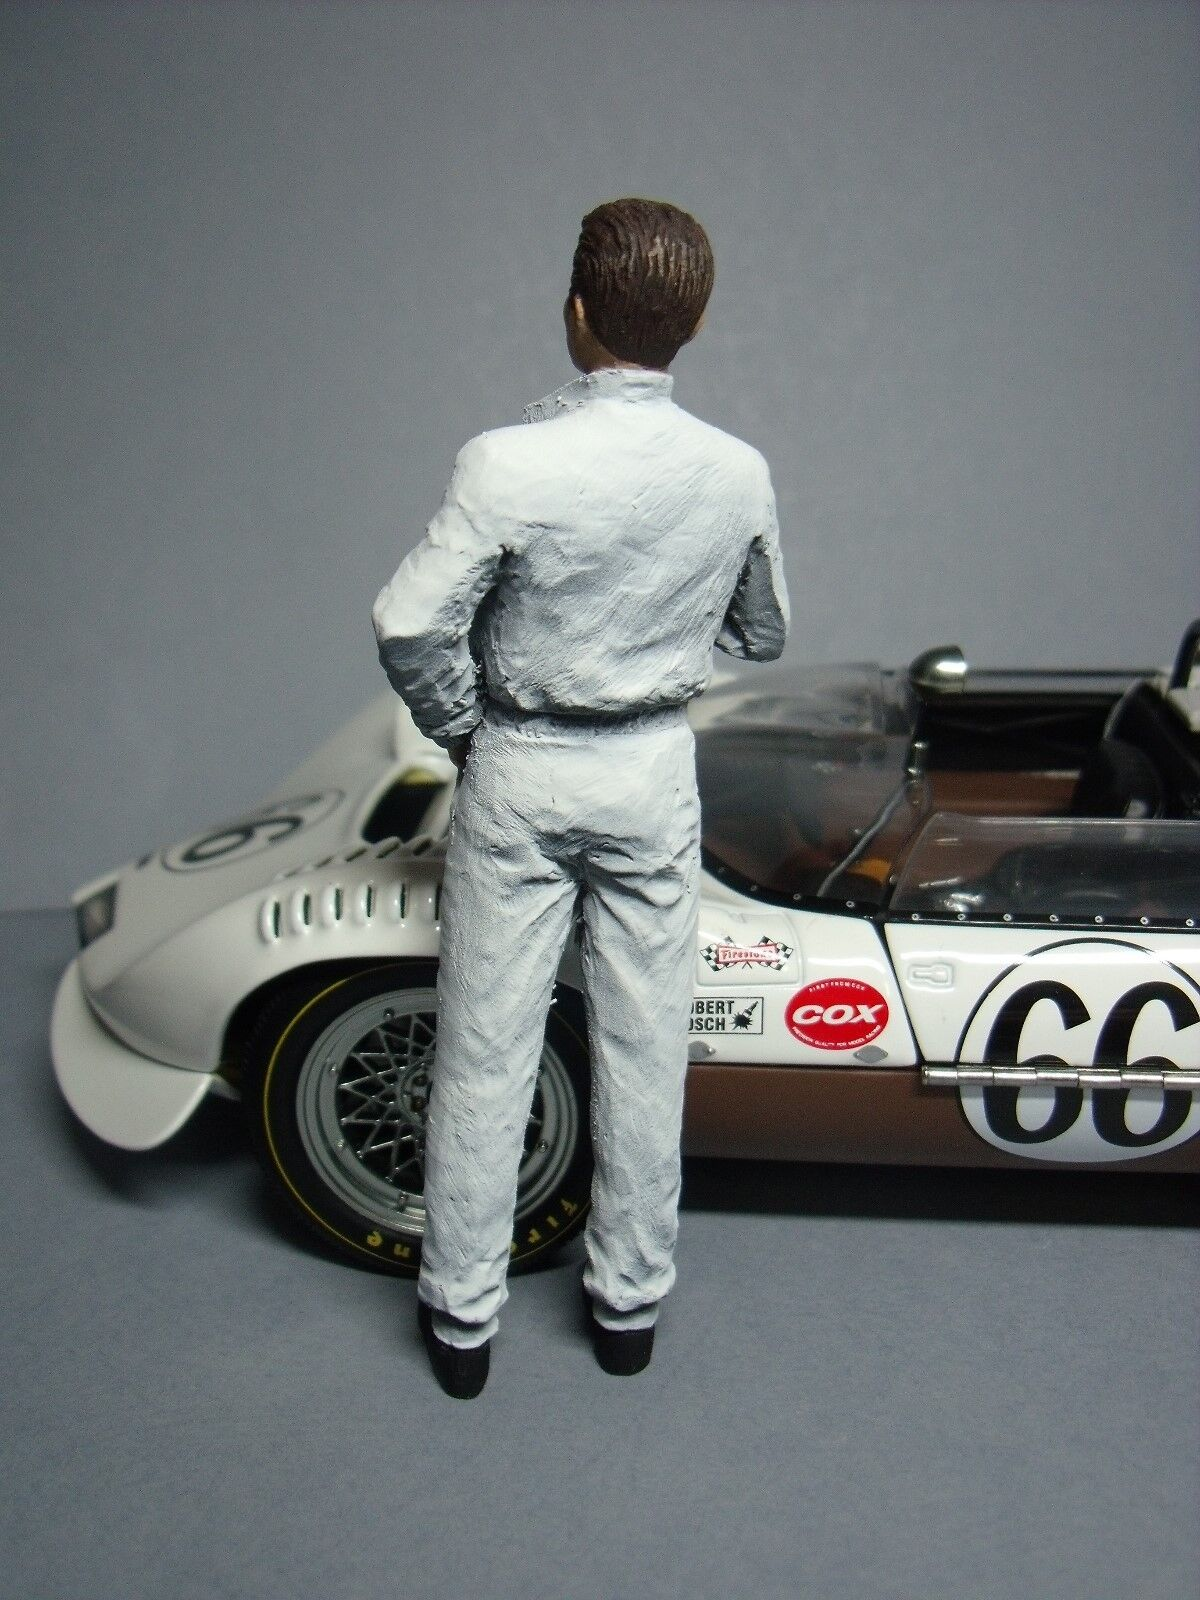 FIGURINE  1 18  JIM JIM JIM  HALL  A  PEINDRE  POUR  CHAPARRAL  VROOM  SCALE  FIGURES 88fb83